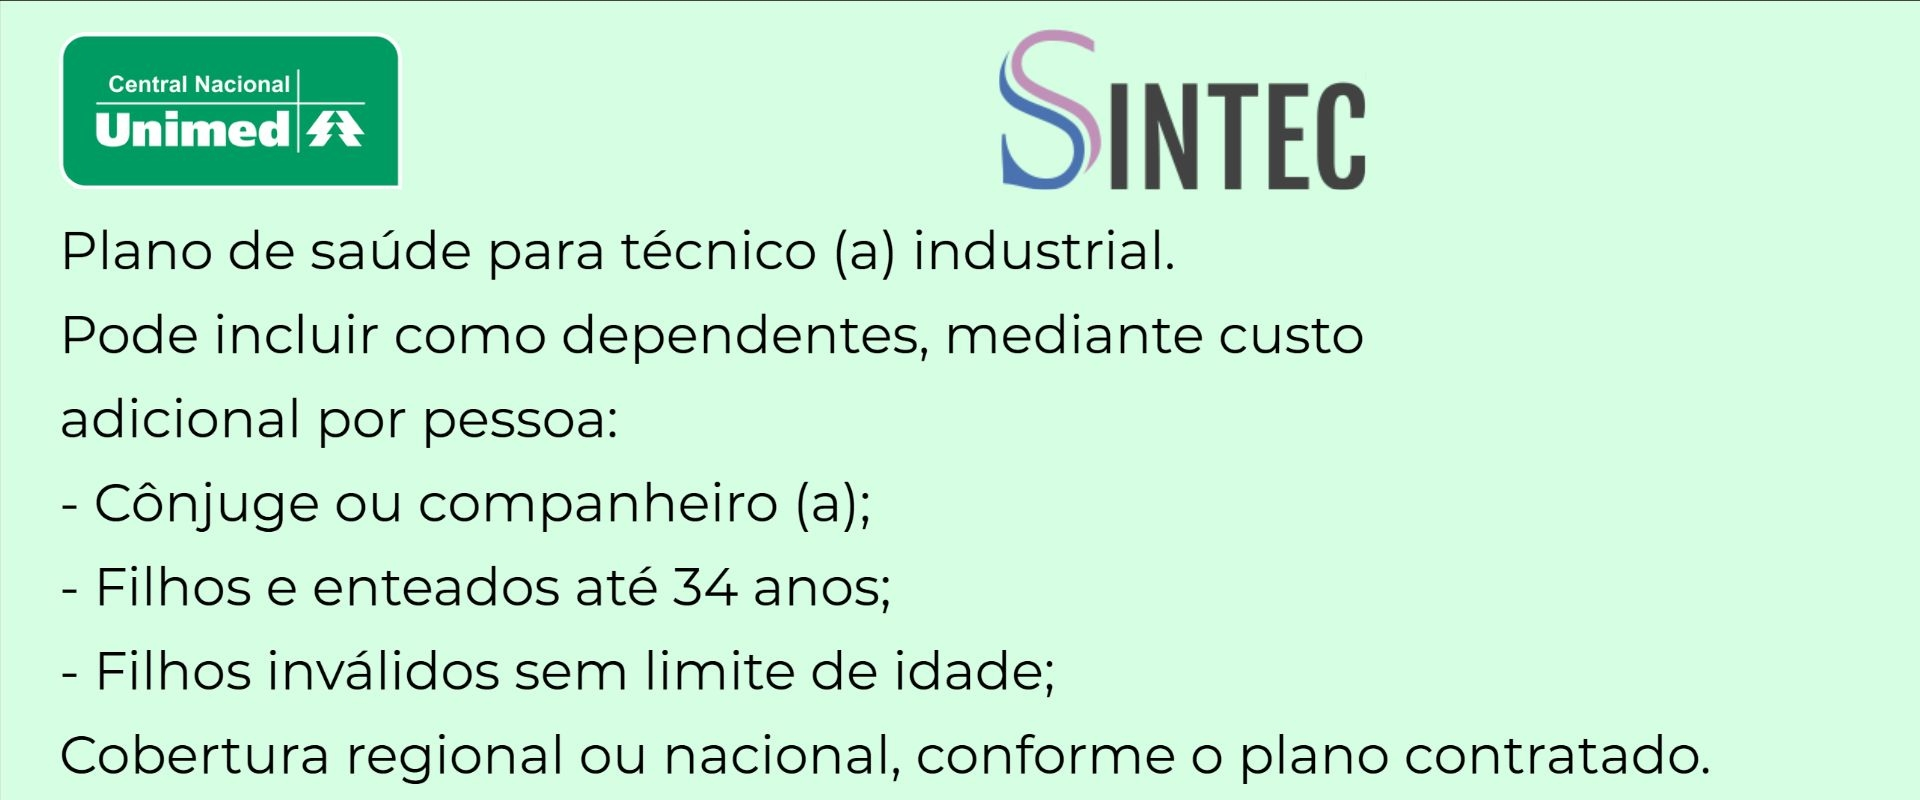 Unimed Sintec-SP